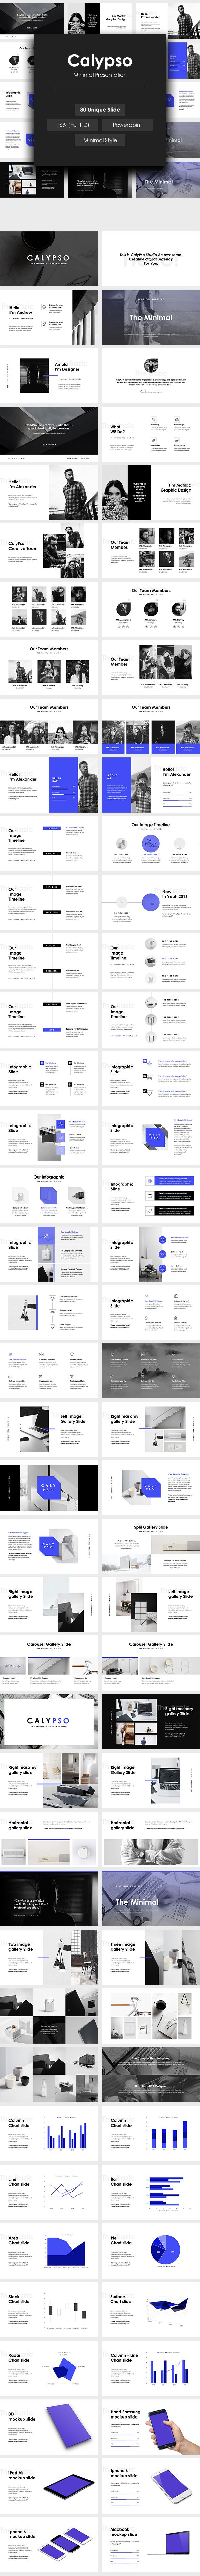 Calypso Minimal Powerpoint Template. Download here: https://graphicriver.net/item/calypso-minimal-powerpoint-template/17464089?ref=ksioks